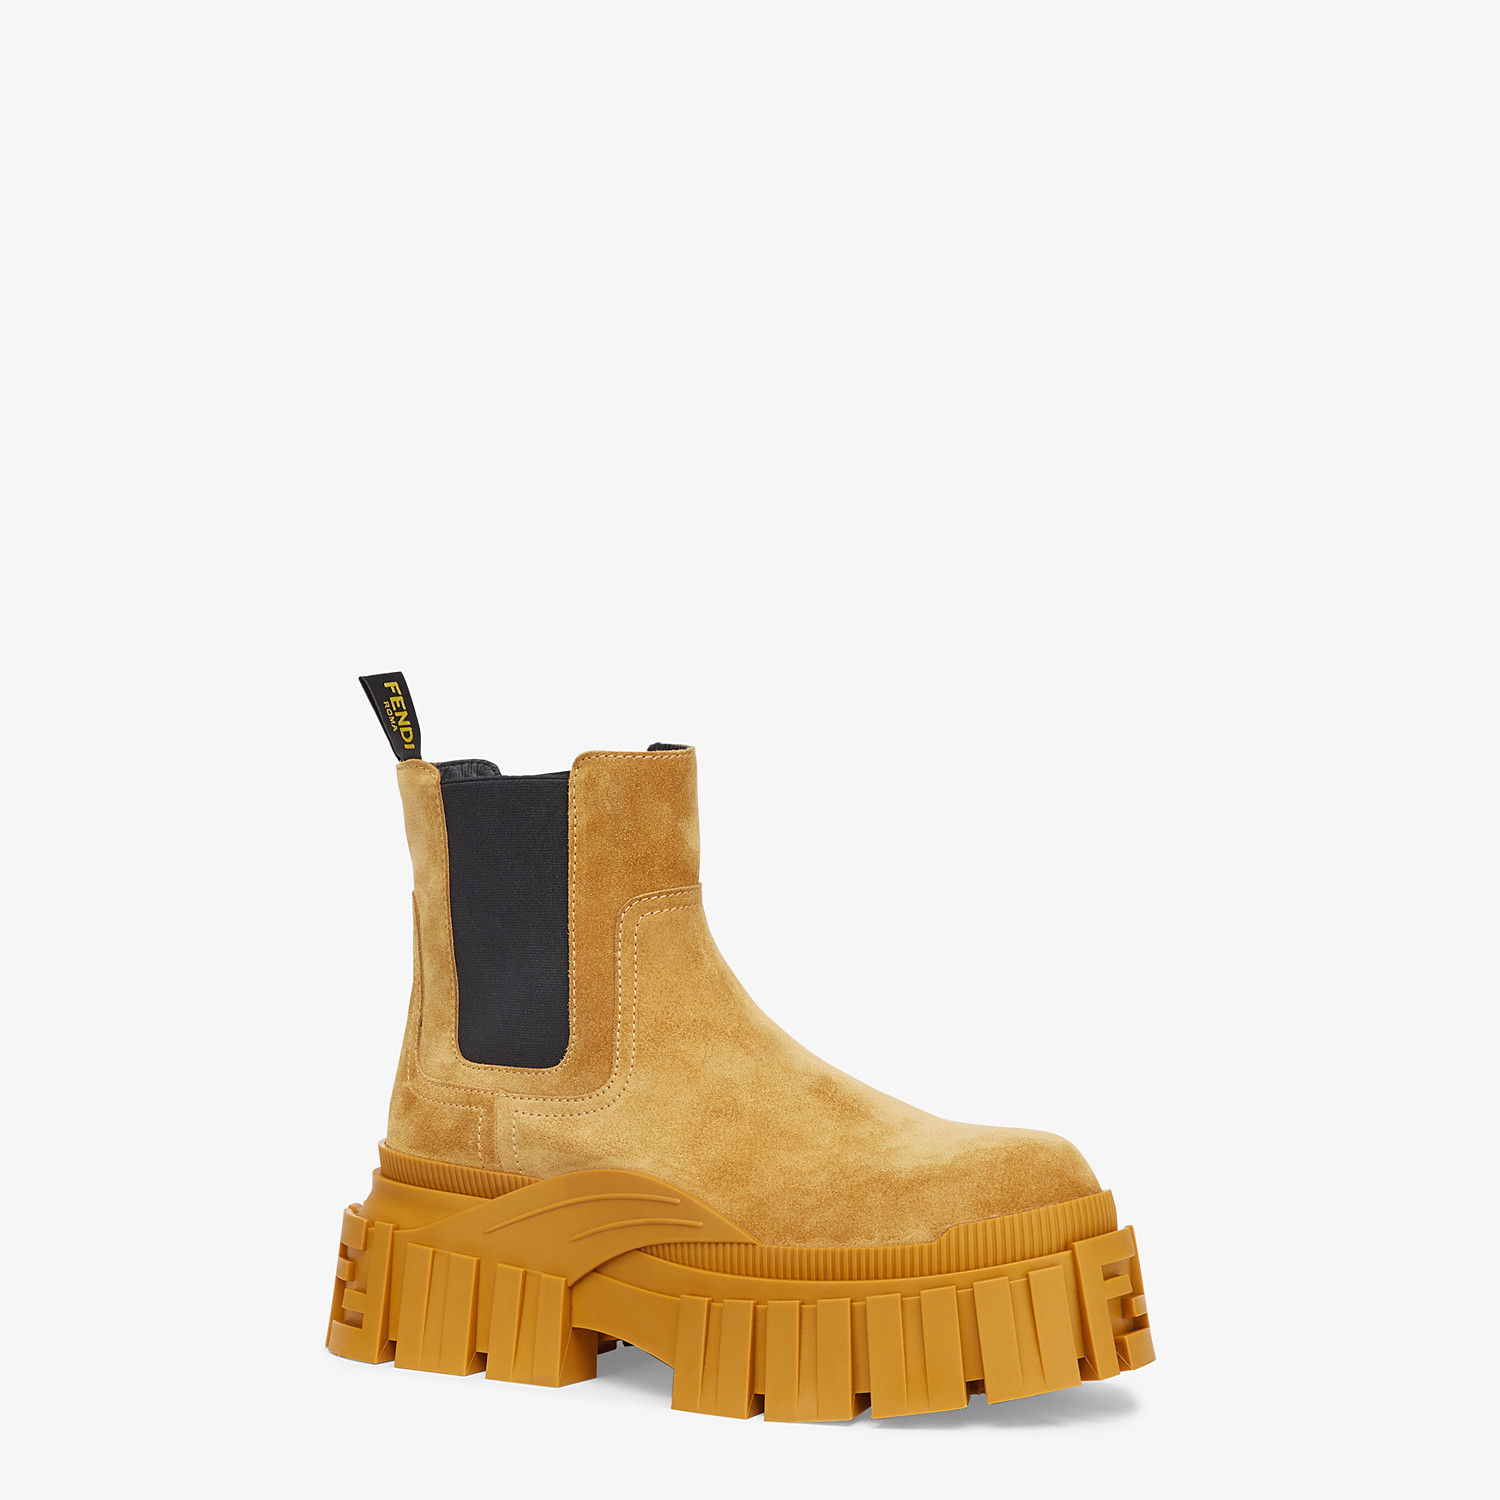 FENDI FENDI FORCE - Yellow suede Chelsea boots - view 2 detail